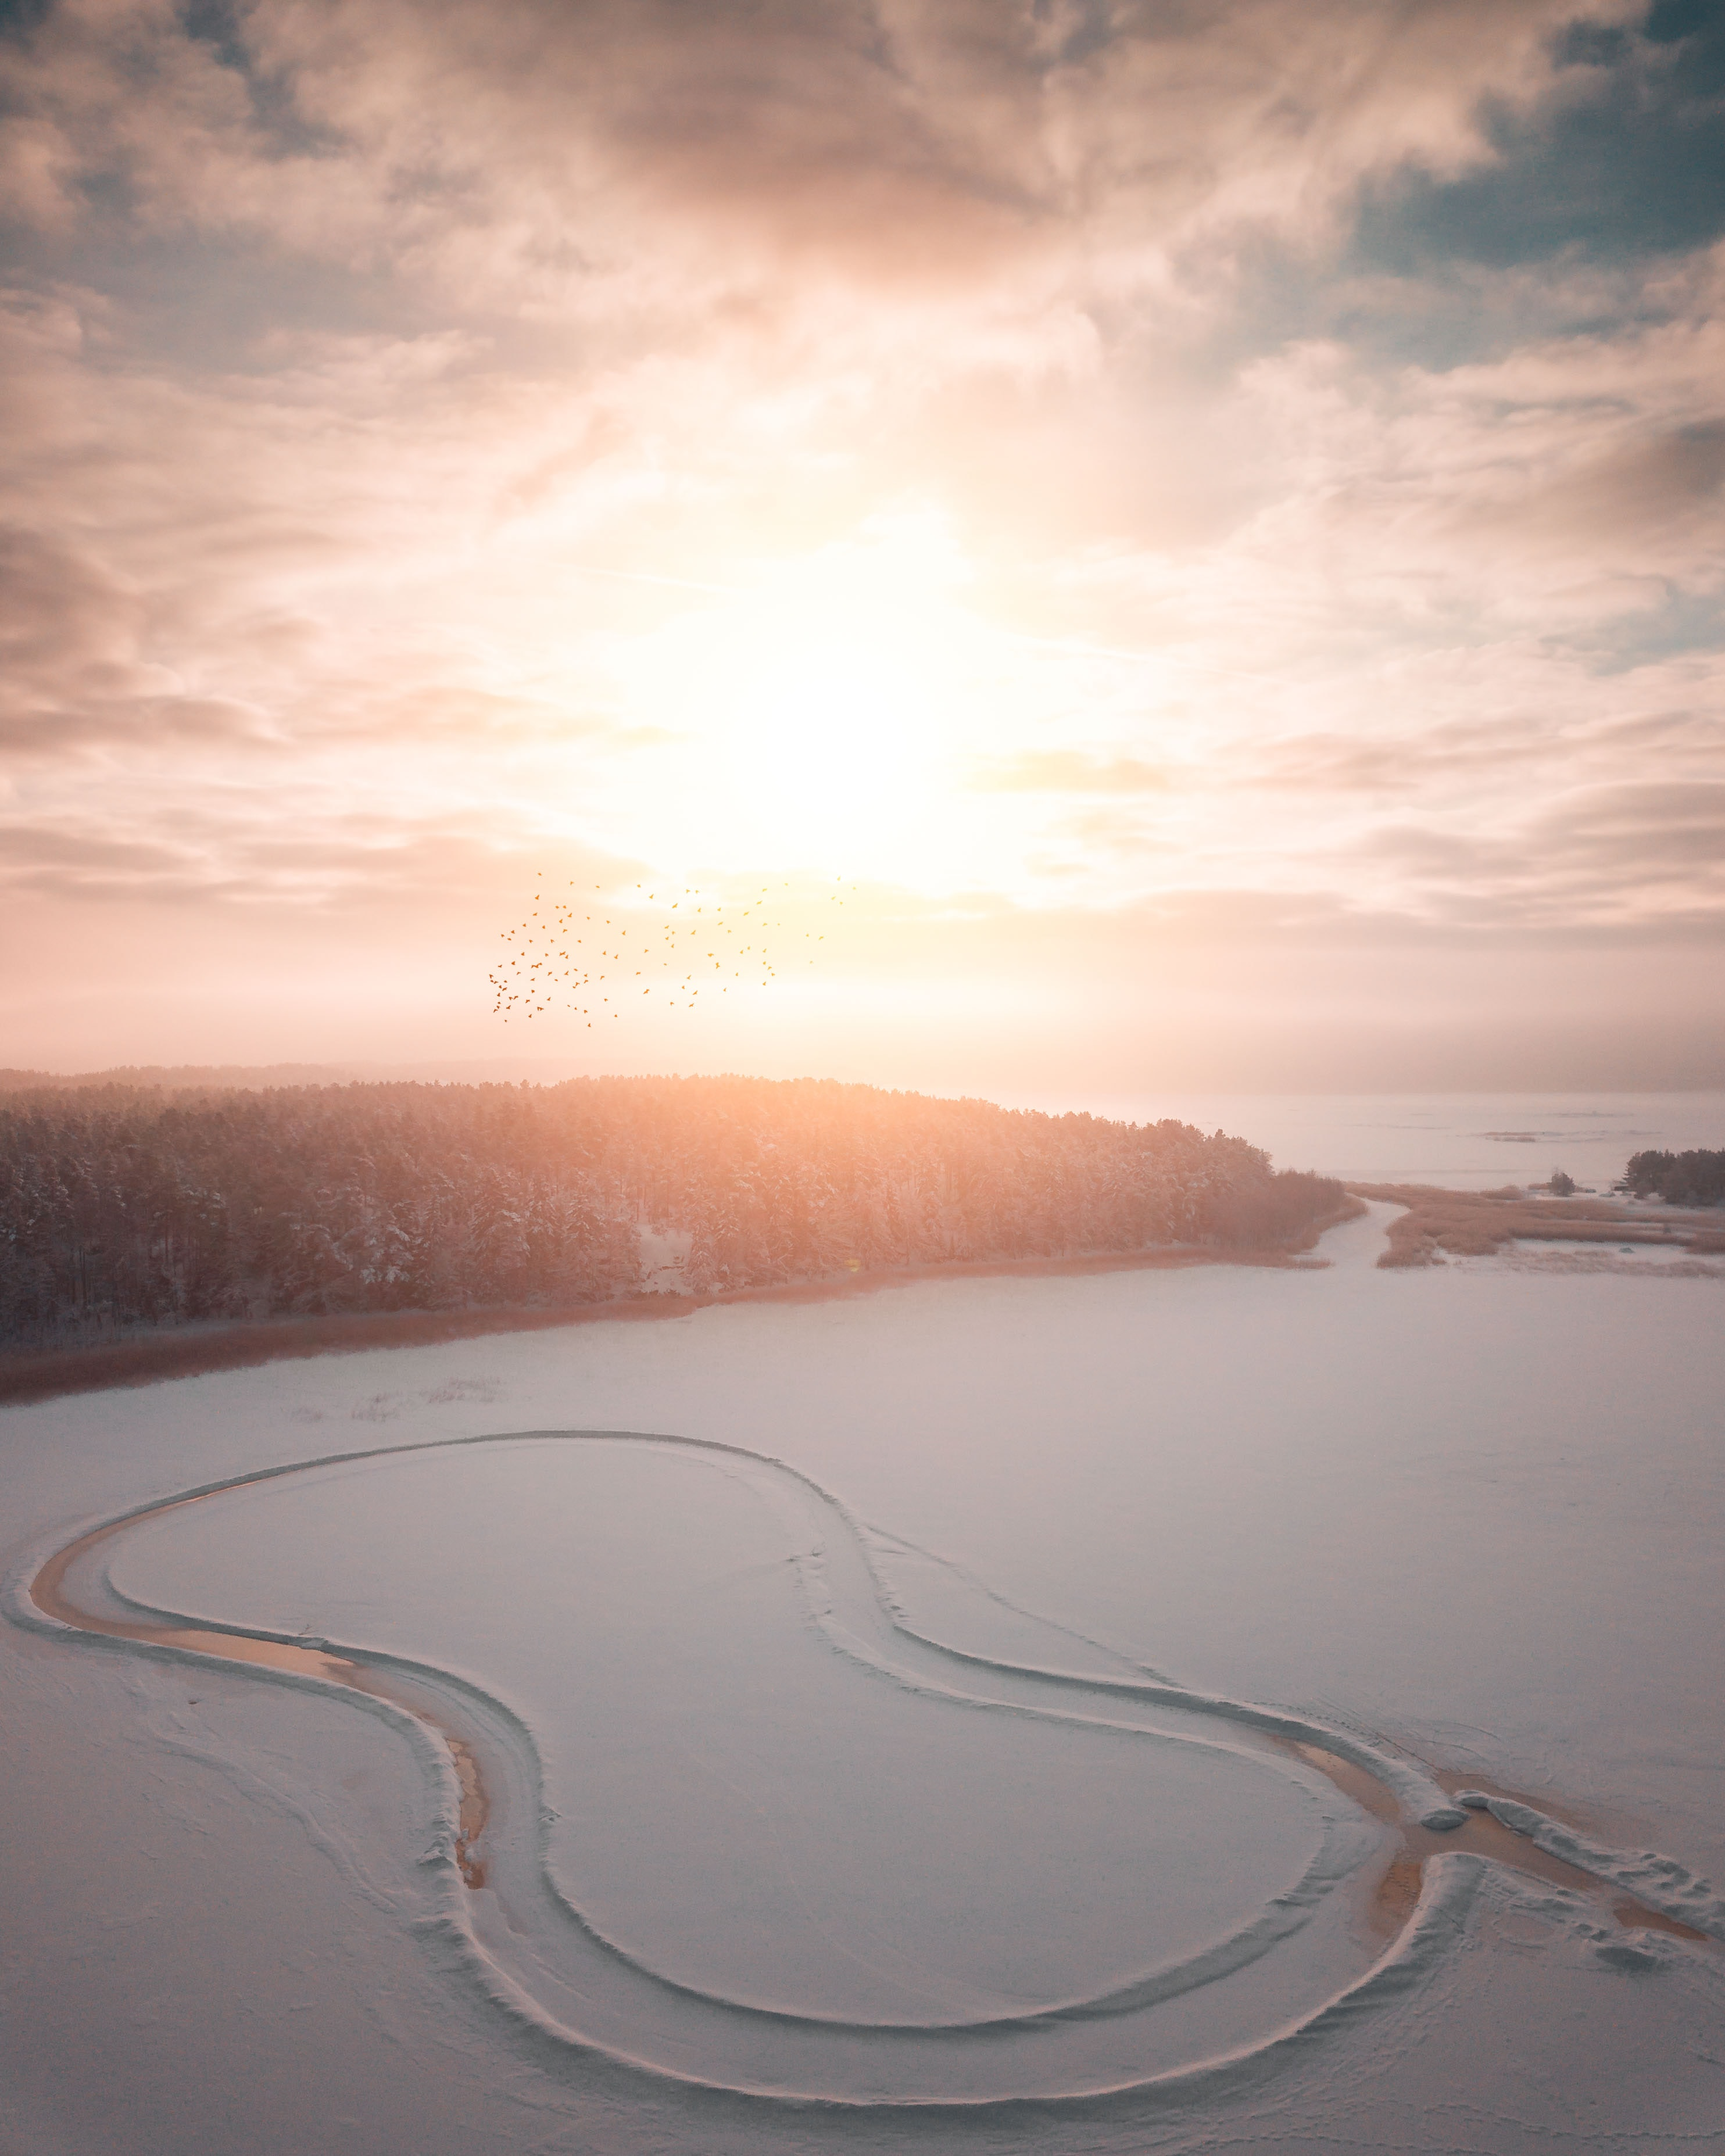 snow covered ground during golden hour